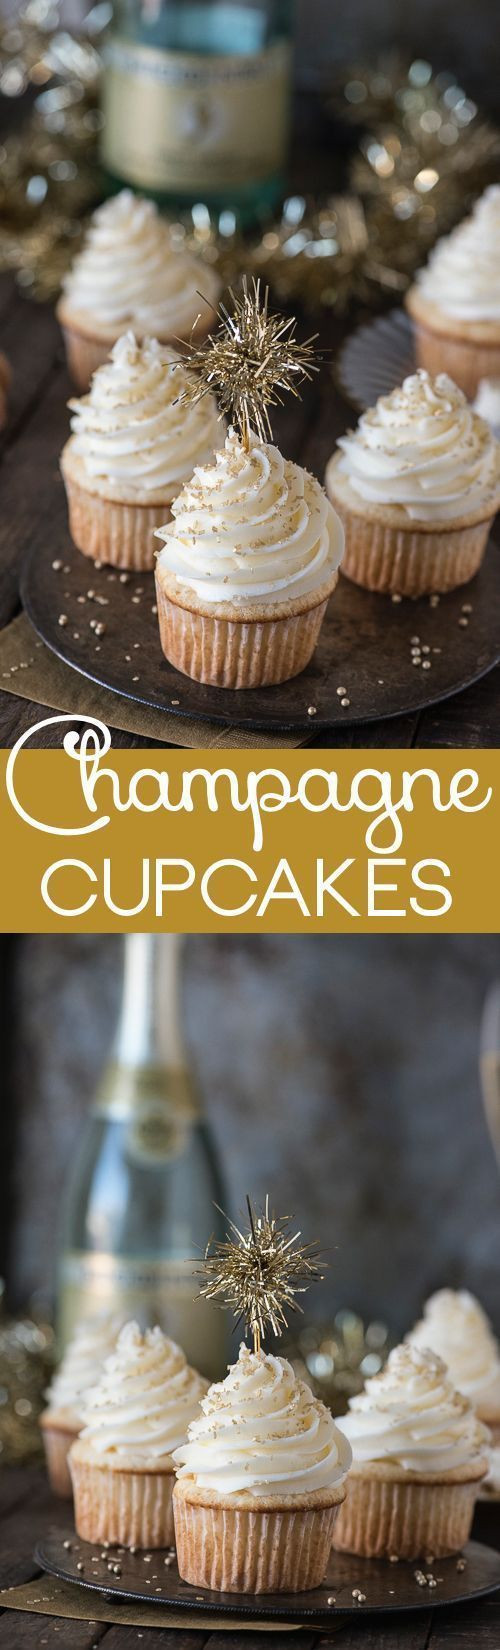 New Year'S Eve Desserts Party Ideas  25 Best Ever New Year s Eve Party Ideas